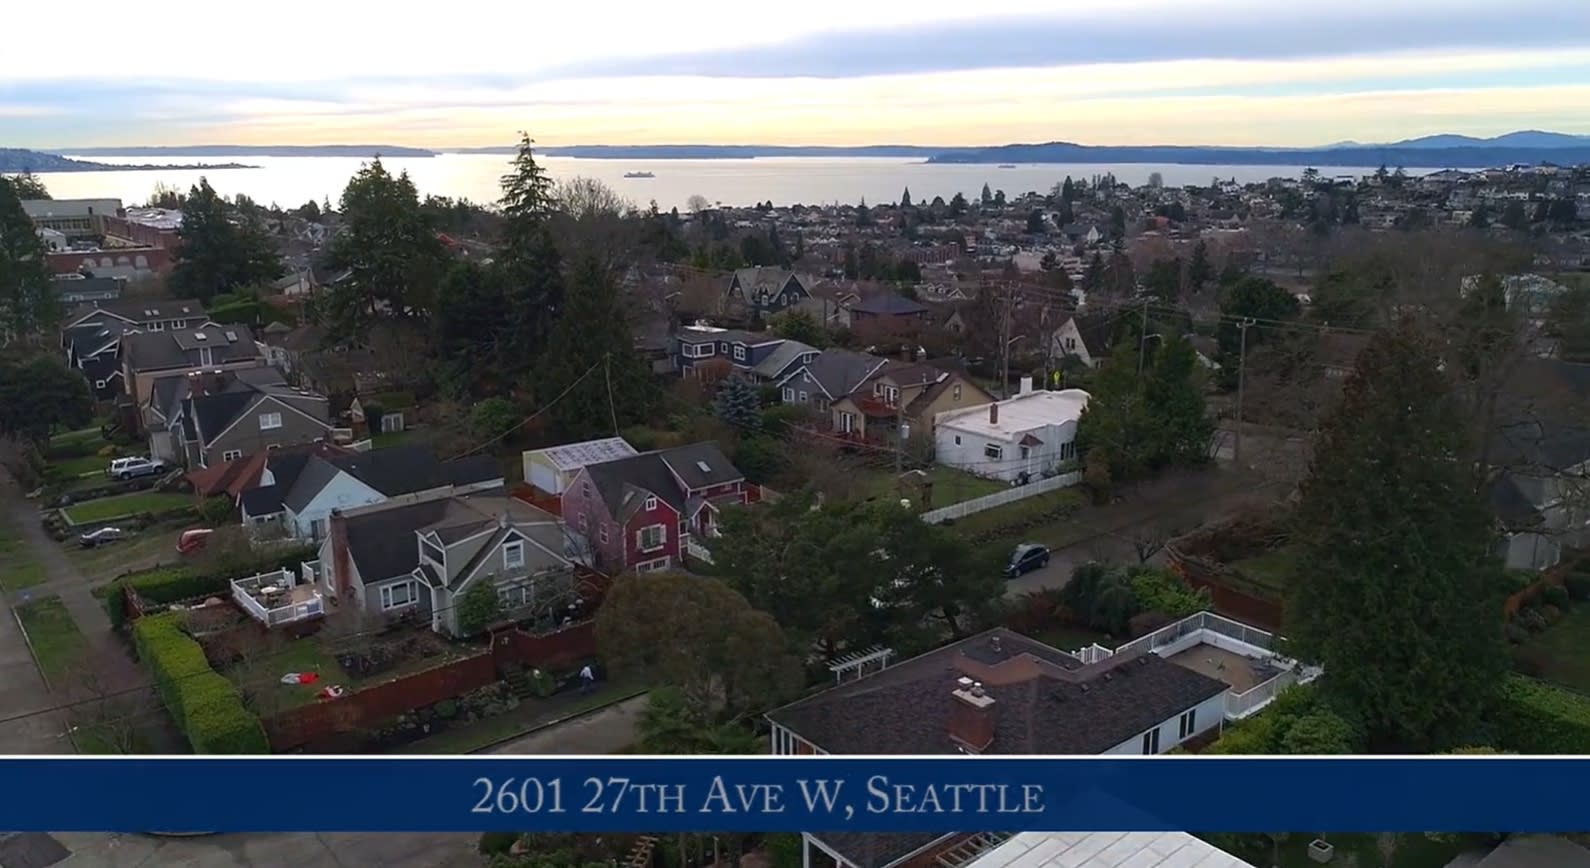 2601 27 Ave W, Seattle | Magnolia View Home video preview